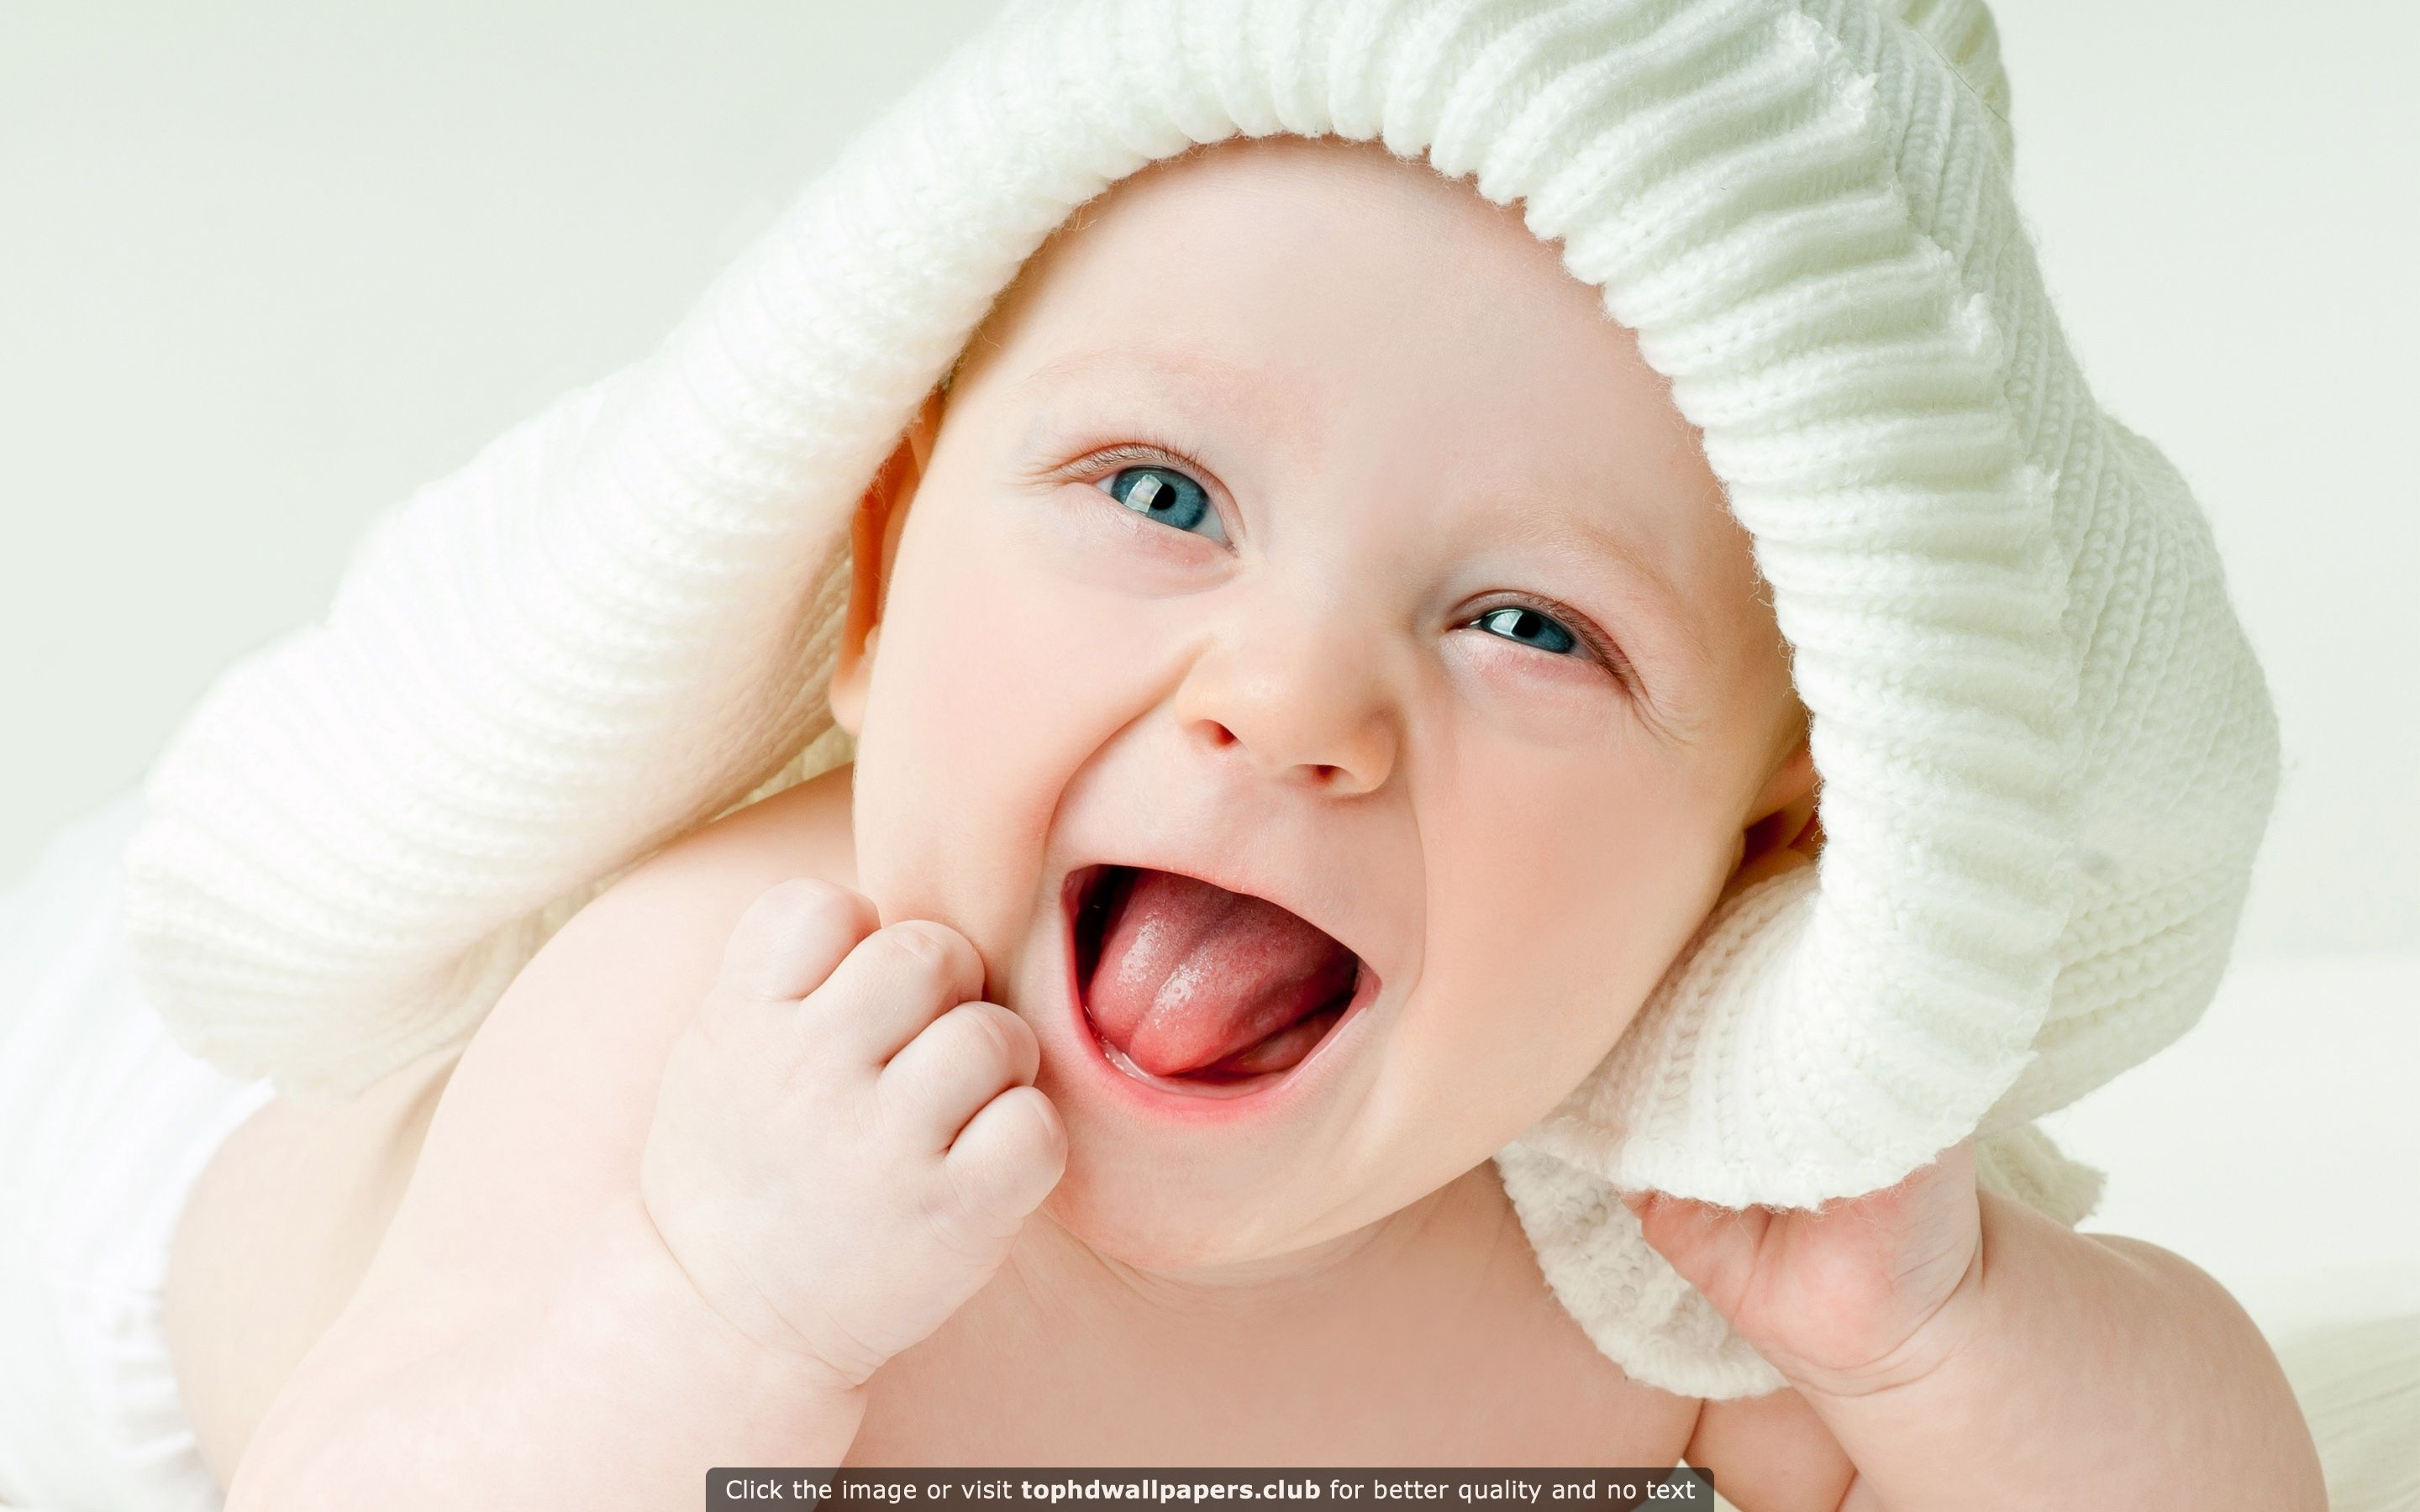 Cute Baby Boy Green Eyes Hd Wallpaper For Your Pc Mac Or Mobile Device Cute Baby Boy Images Cute Baby Wallpaper Cute Baby Boy Pictures